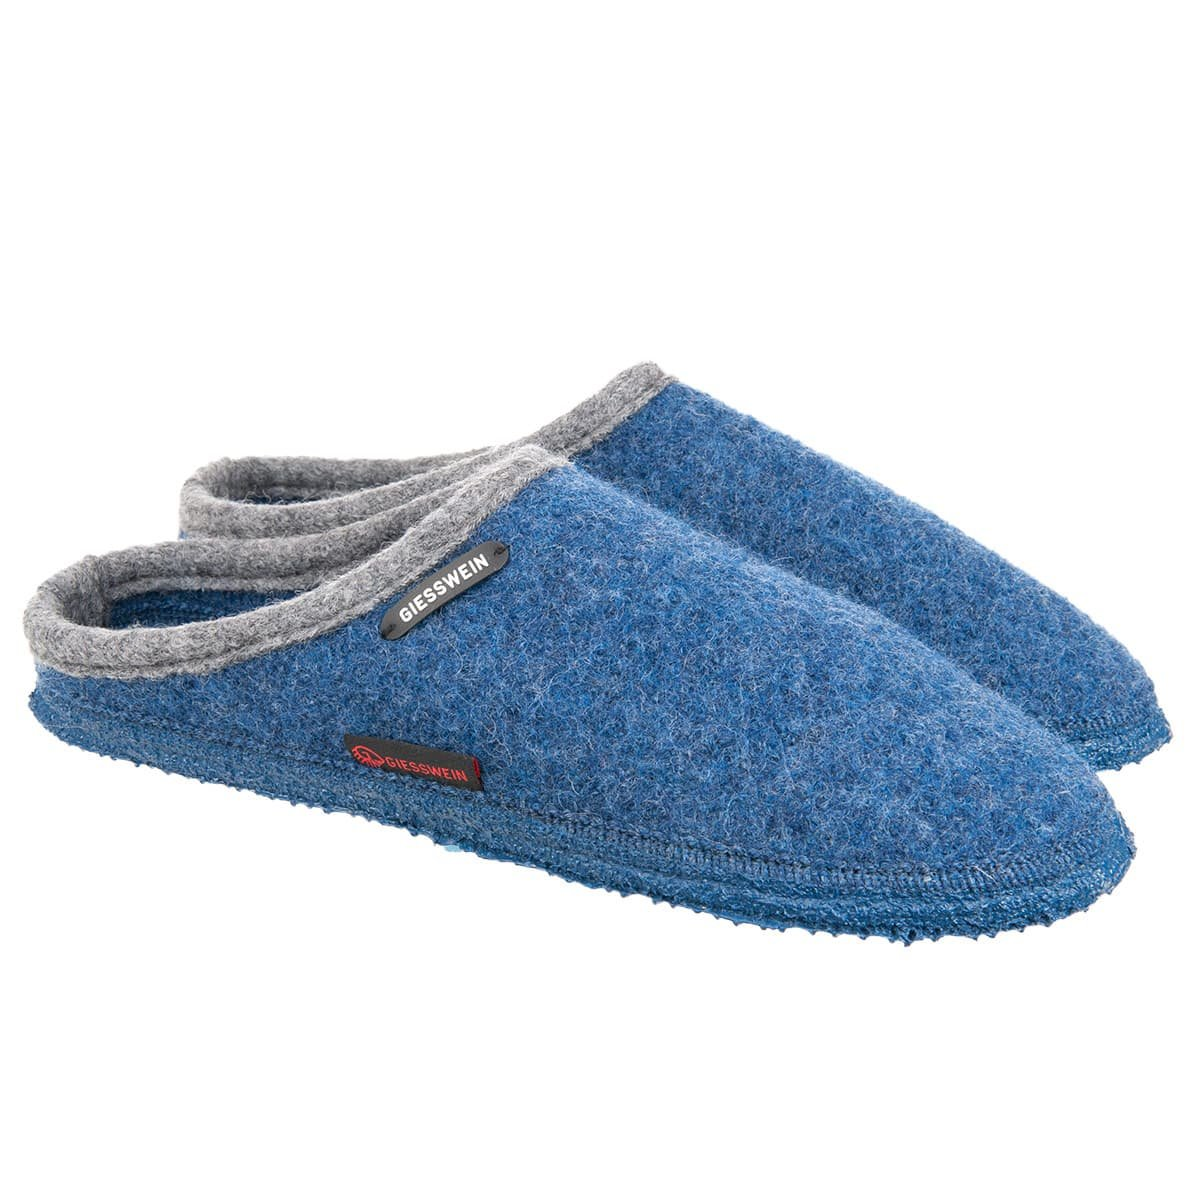 Slippers by GIESSWEIN classic design with non-slip soles f1b6ab7d0a2